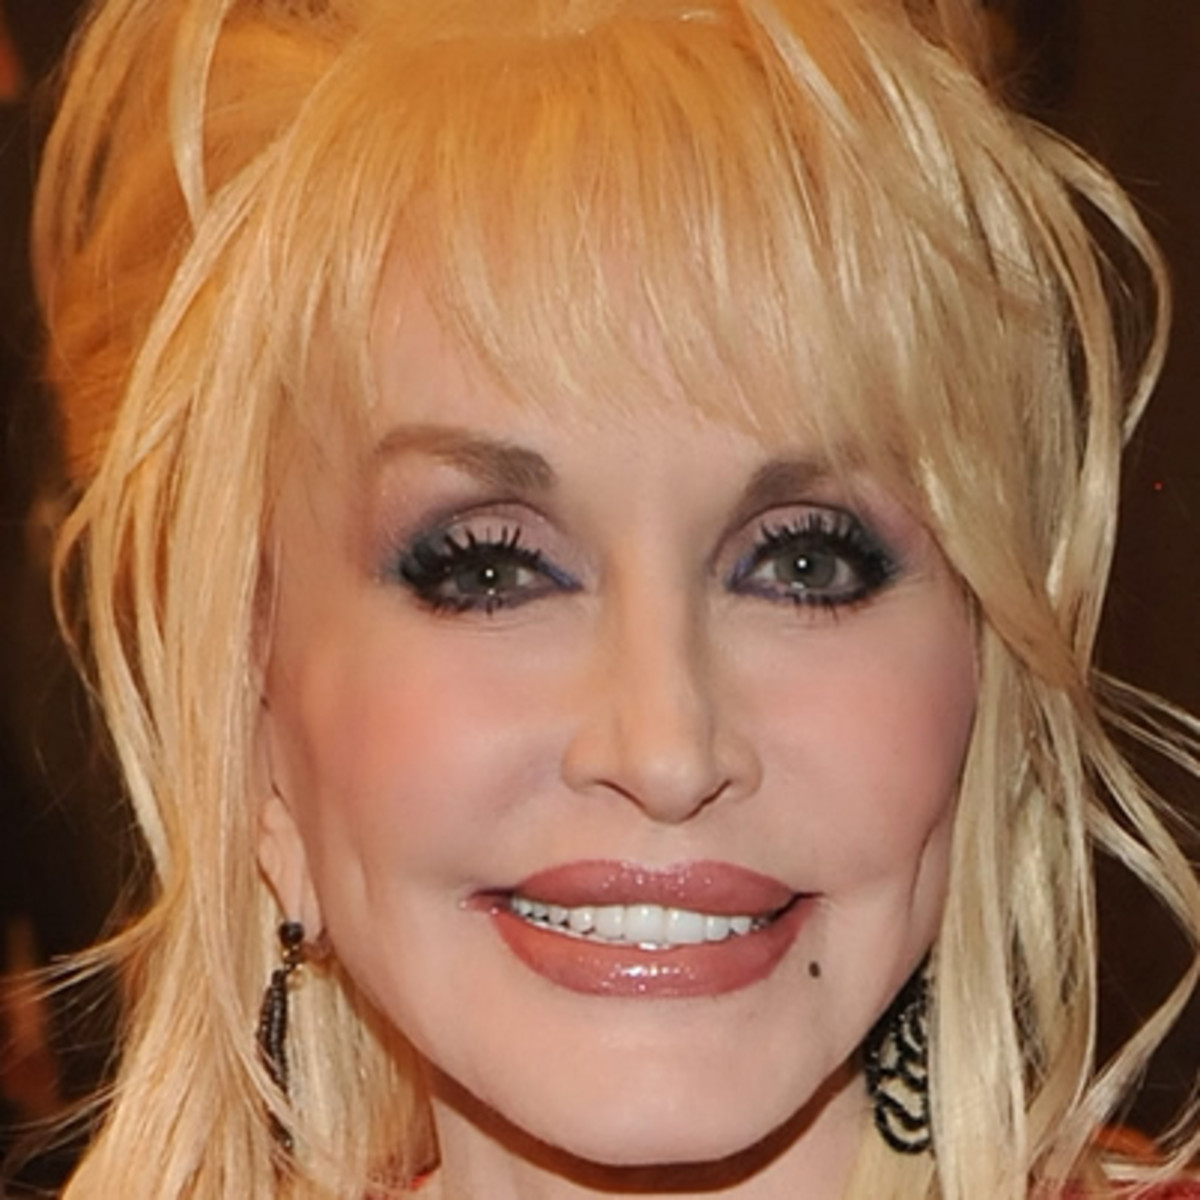 a biography of dolly rebecca parton Dolly rebecca parton biography with personal life, affair and married related info wiki in timeline with facts age, height, and info of age,net worth,married,husband,ethnicity,nationality.